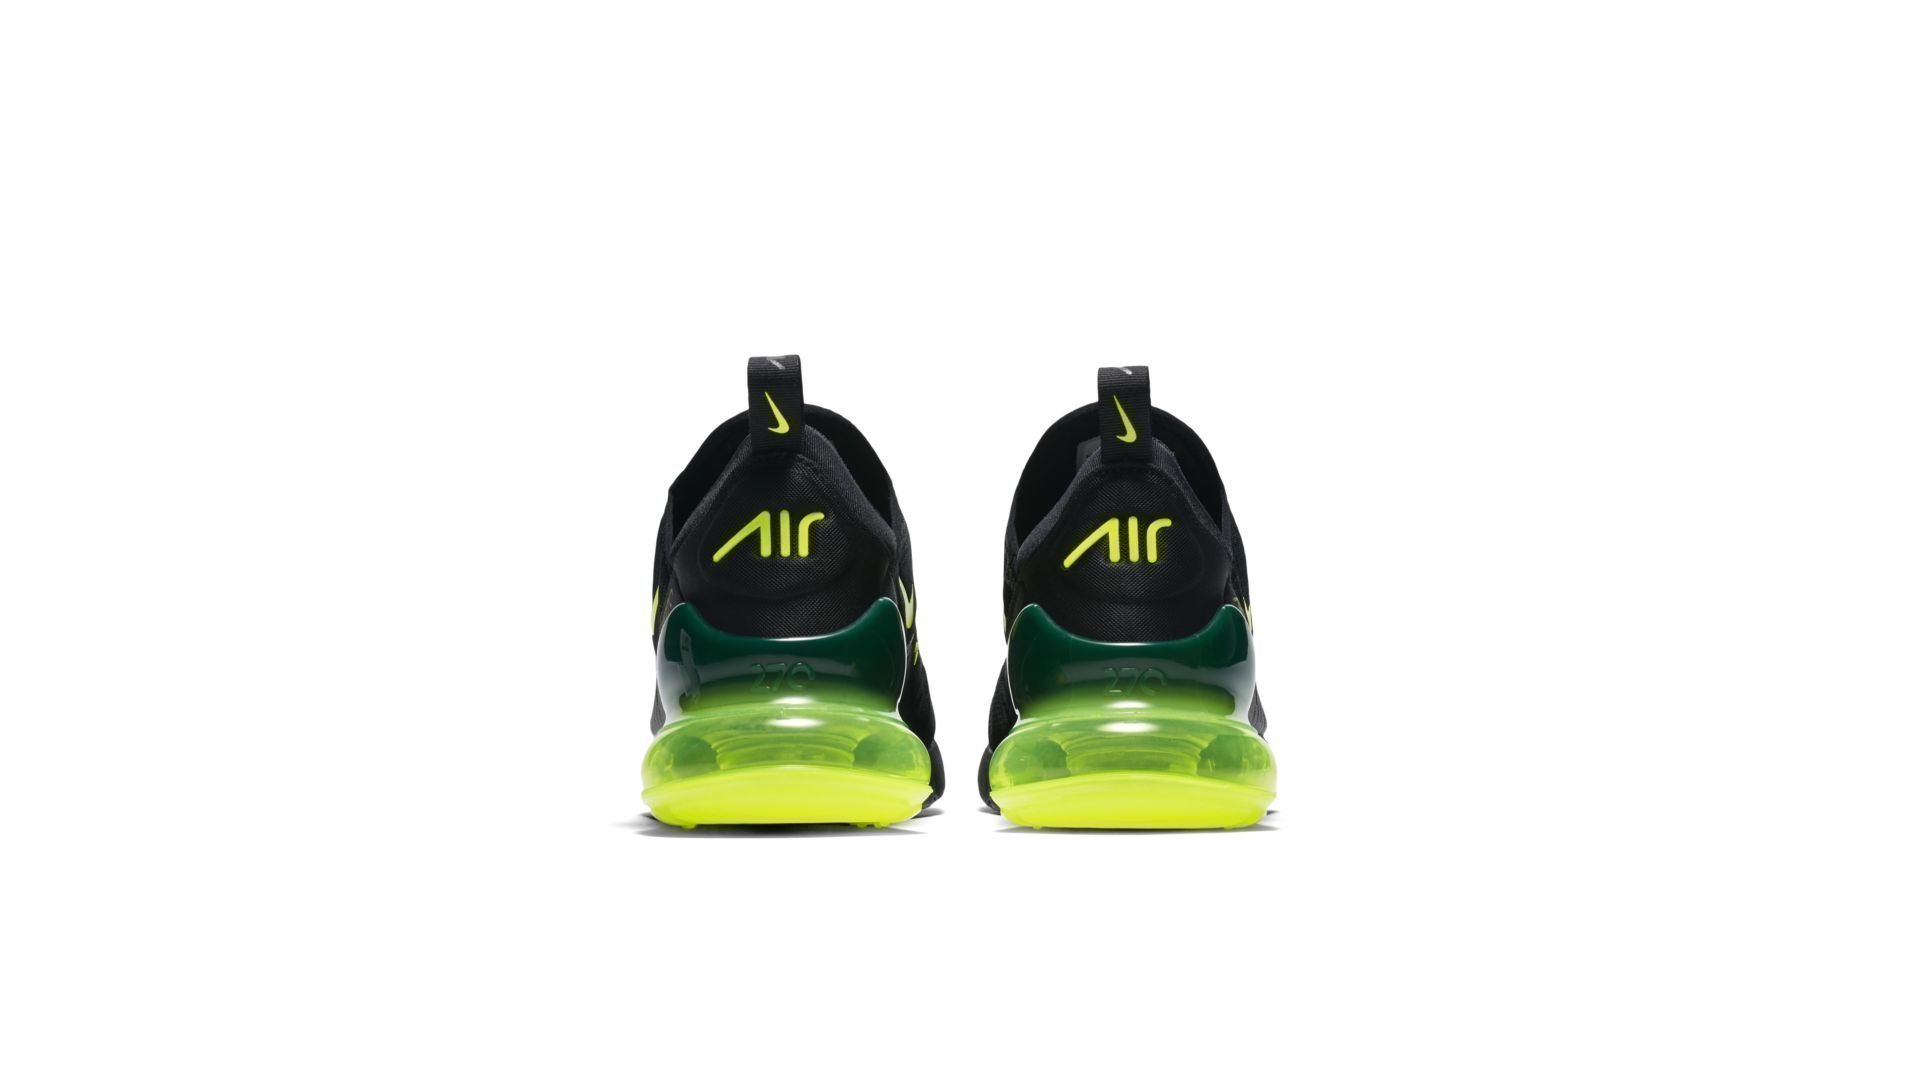 Nike Air Max 270 BlackVolt Black Oil Grey AH8050 017